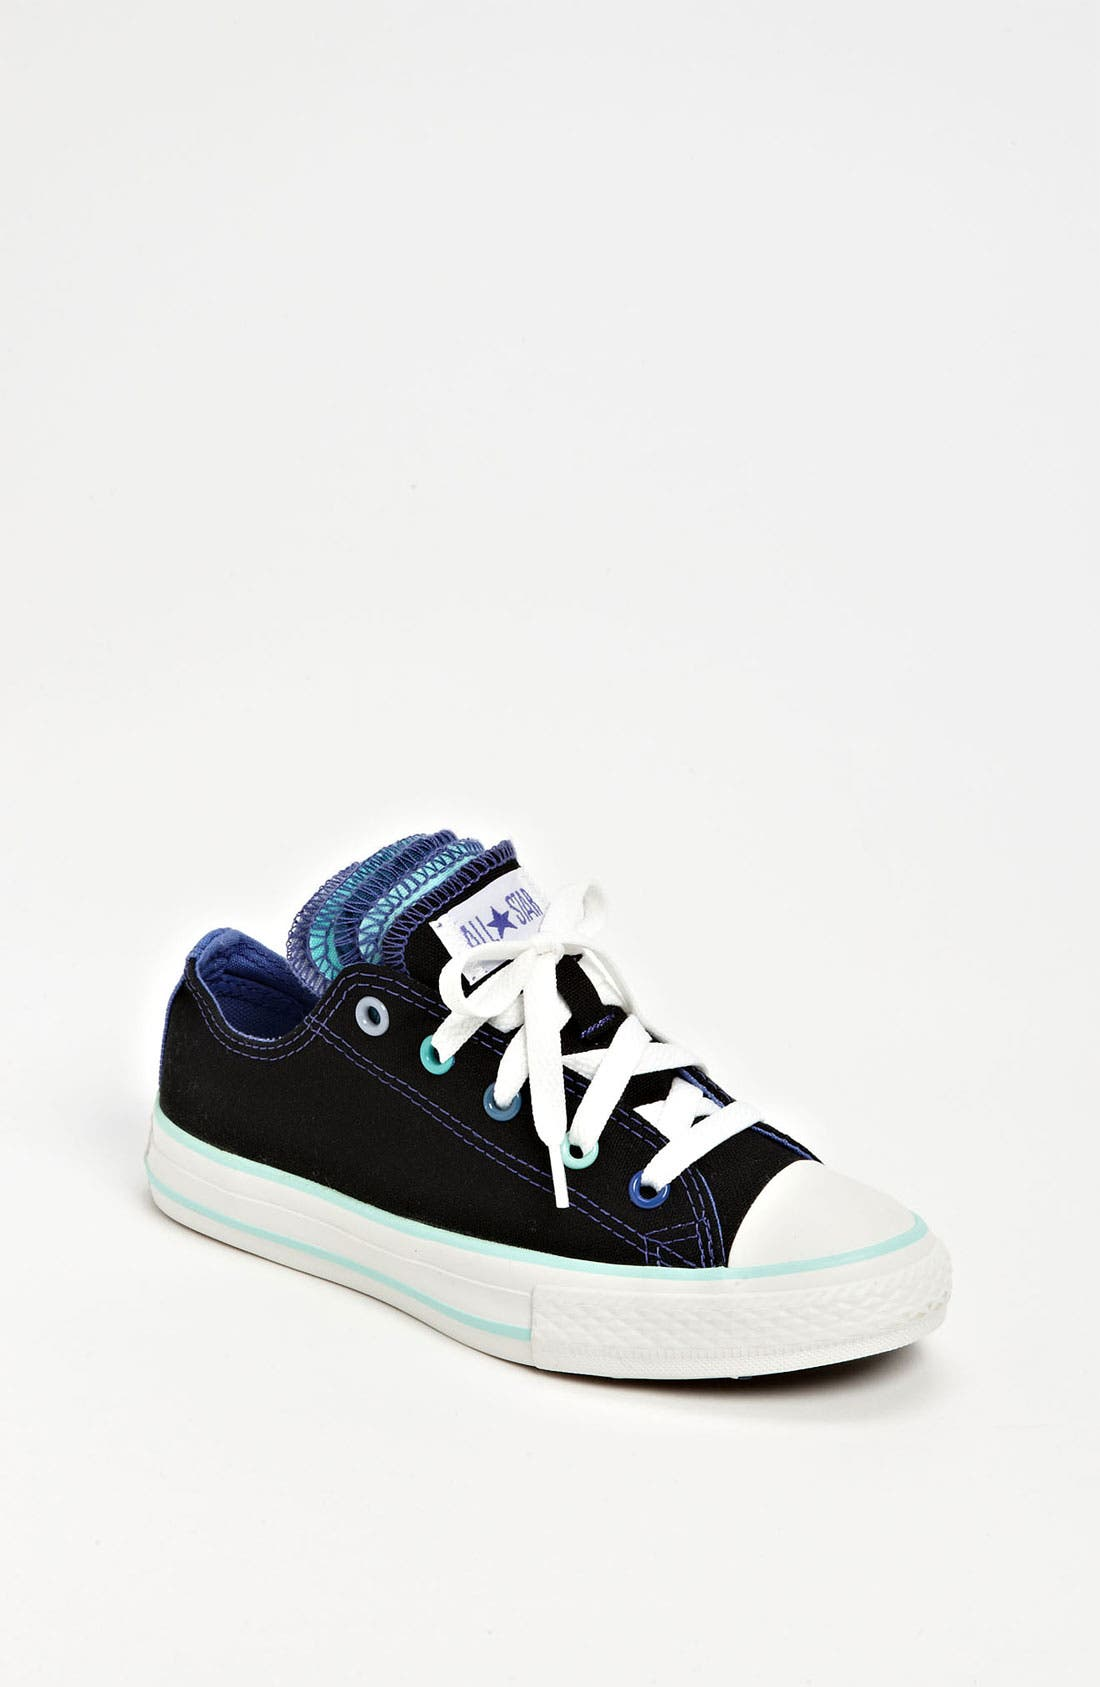 Alternate Image 1 Selected - Converse Chuck Taylor® All Star® Multi Tongue Sneaker (Toddler, Little Kid & Big Kid)